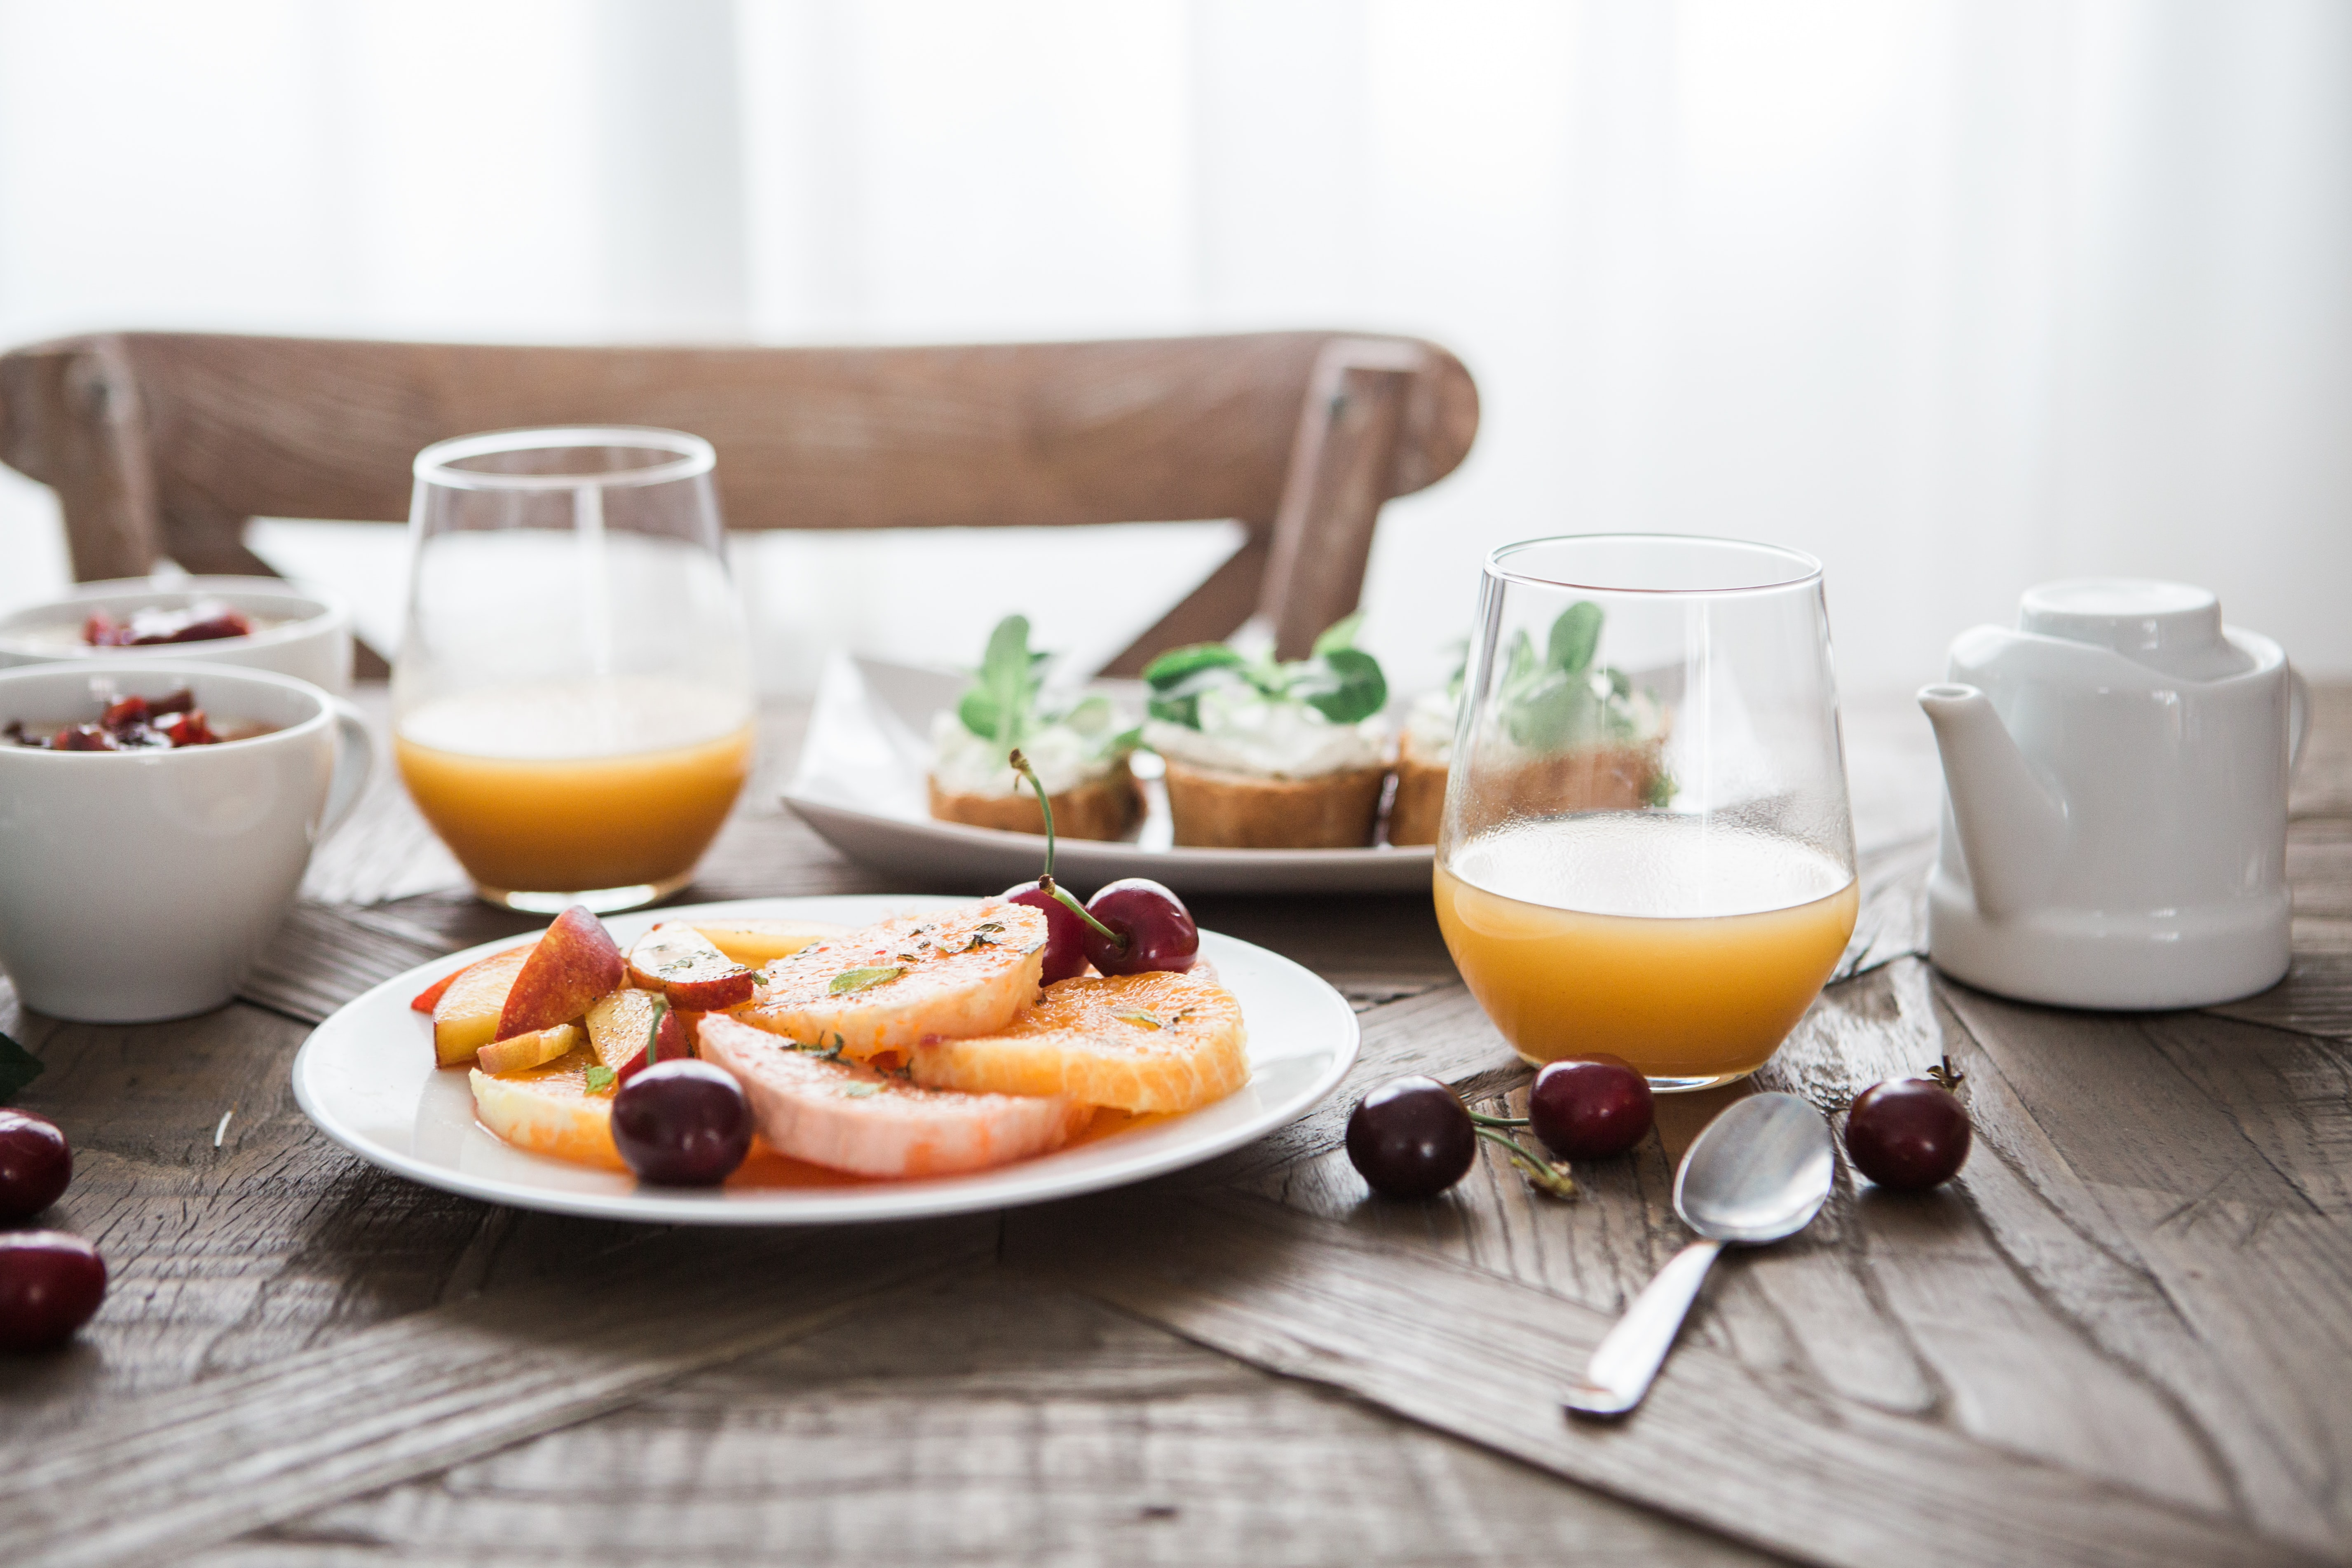 A breakfast with fruits, orange juice and bread with cream on a wooden table